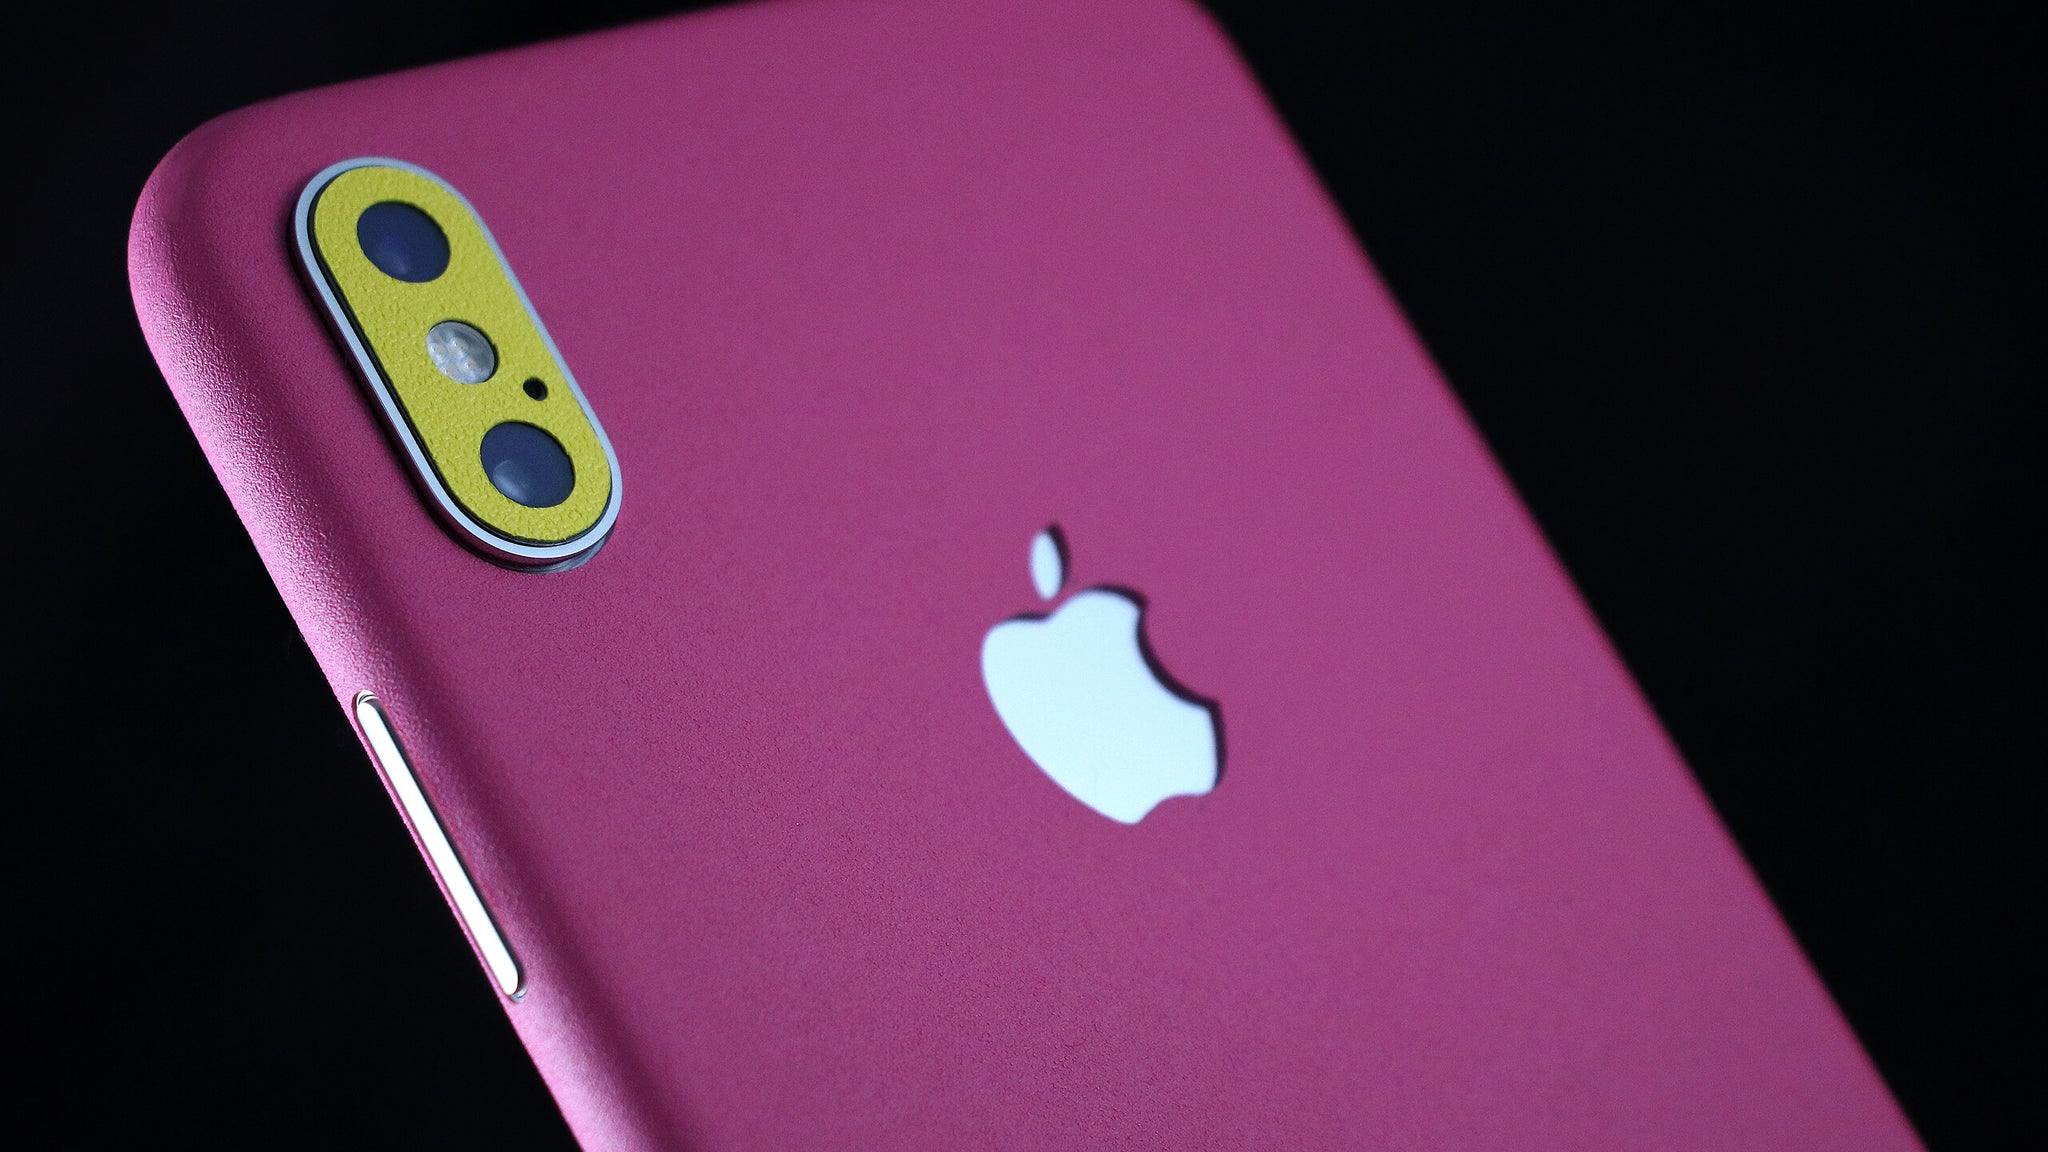 iPhone XS Max True Colour Pink and True Colour Yellow skin